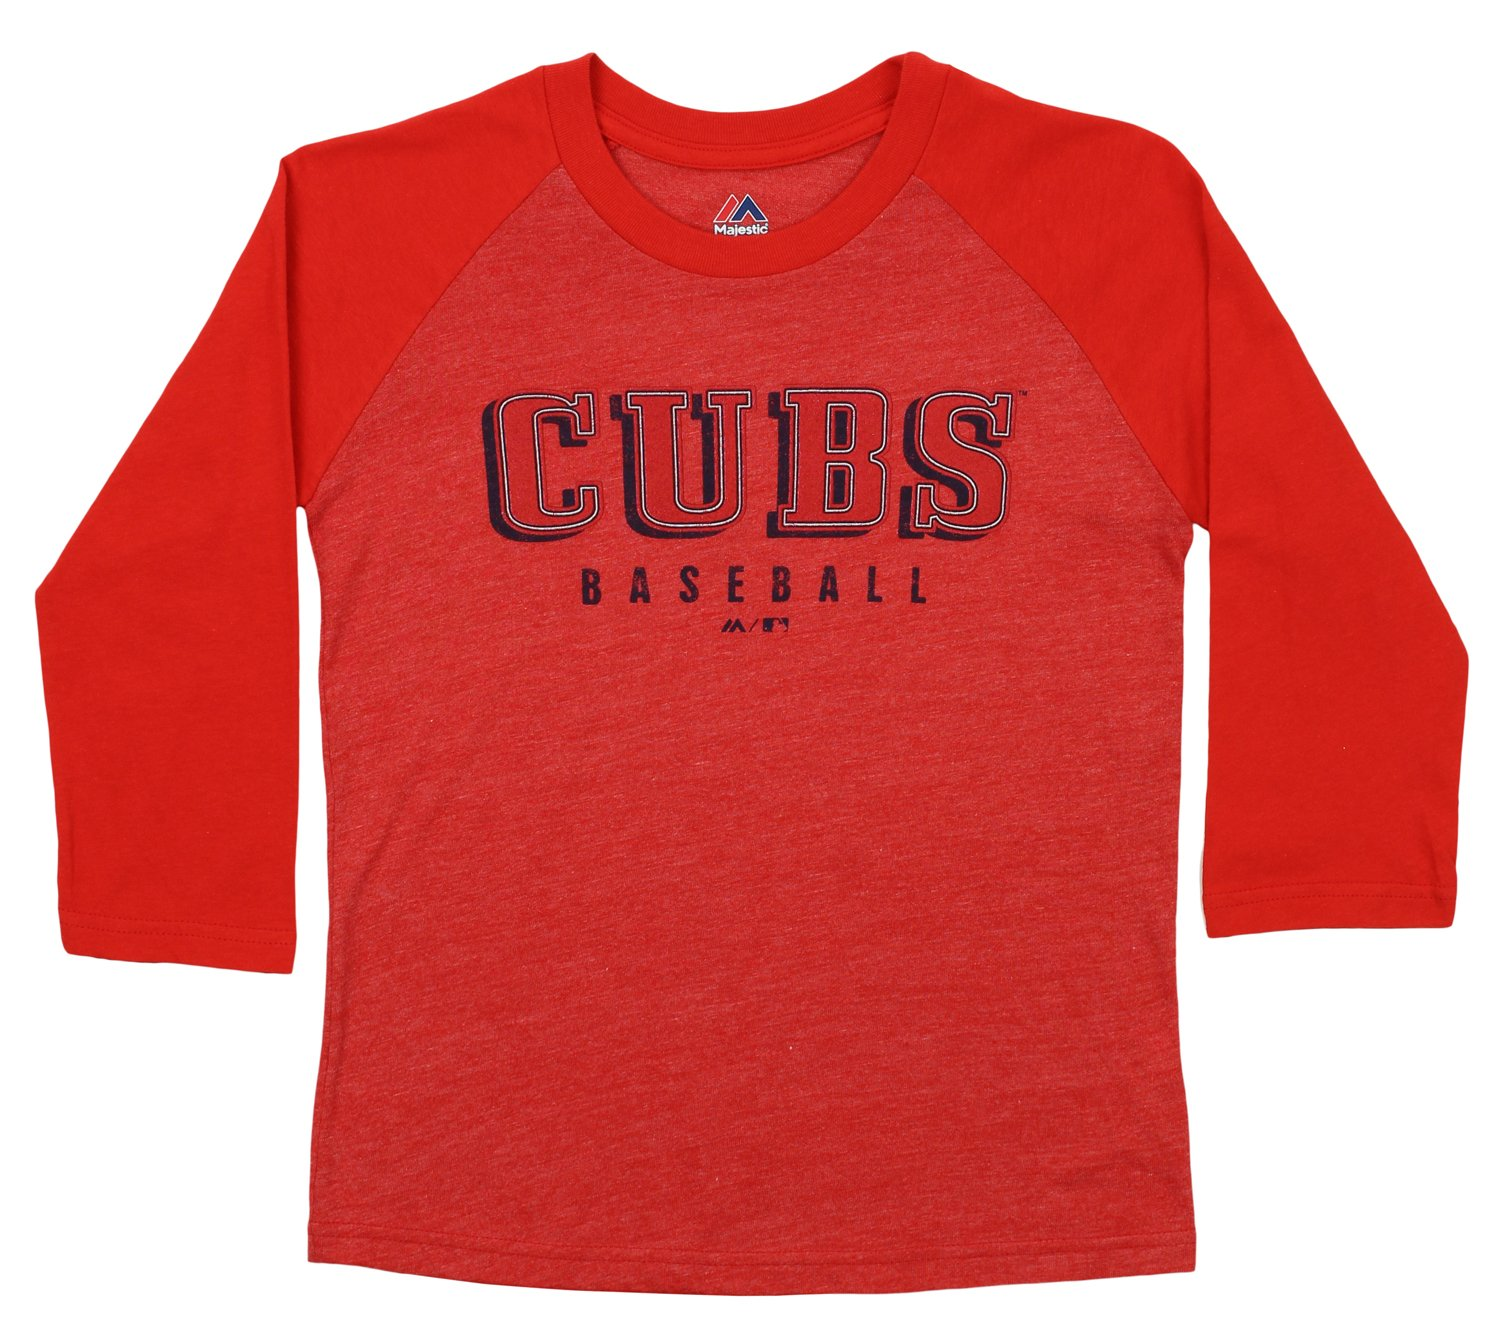 promo code d40c3 9202c Outerstuff MLB Youth (8-18) Baseball Academy 3/4 Sleeve Raglan Tee, Team  Variation